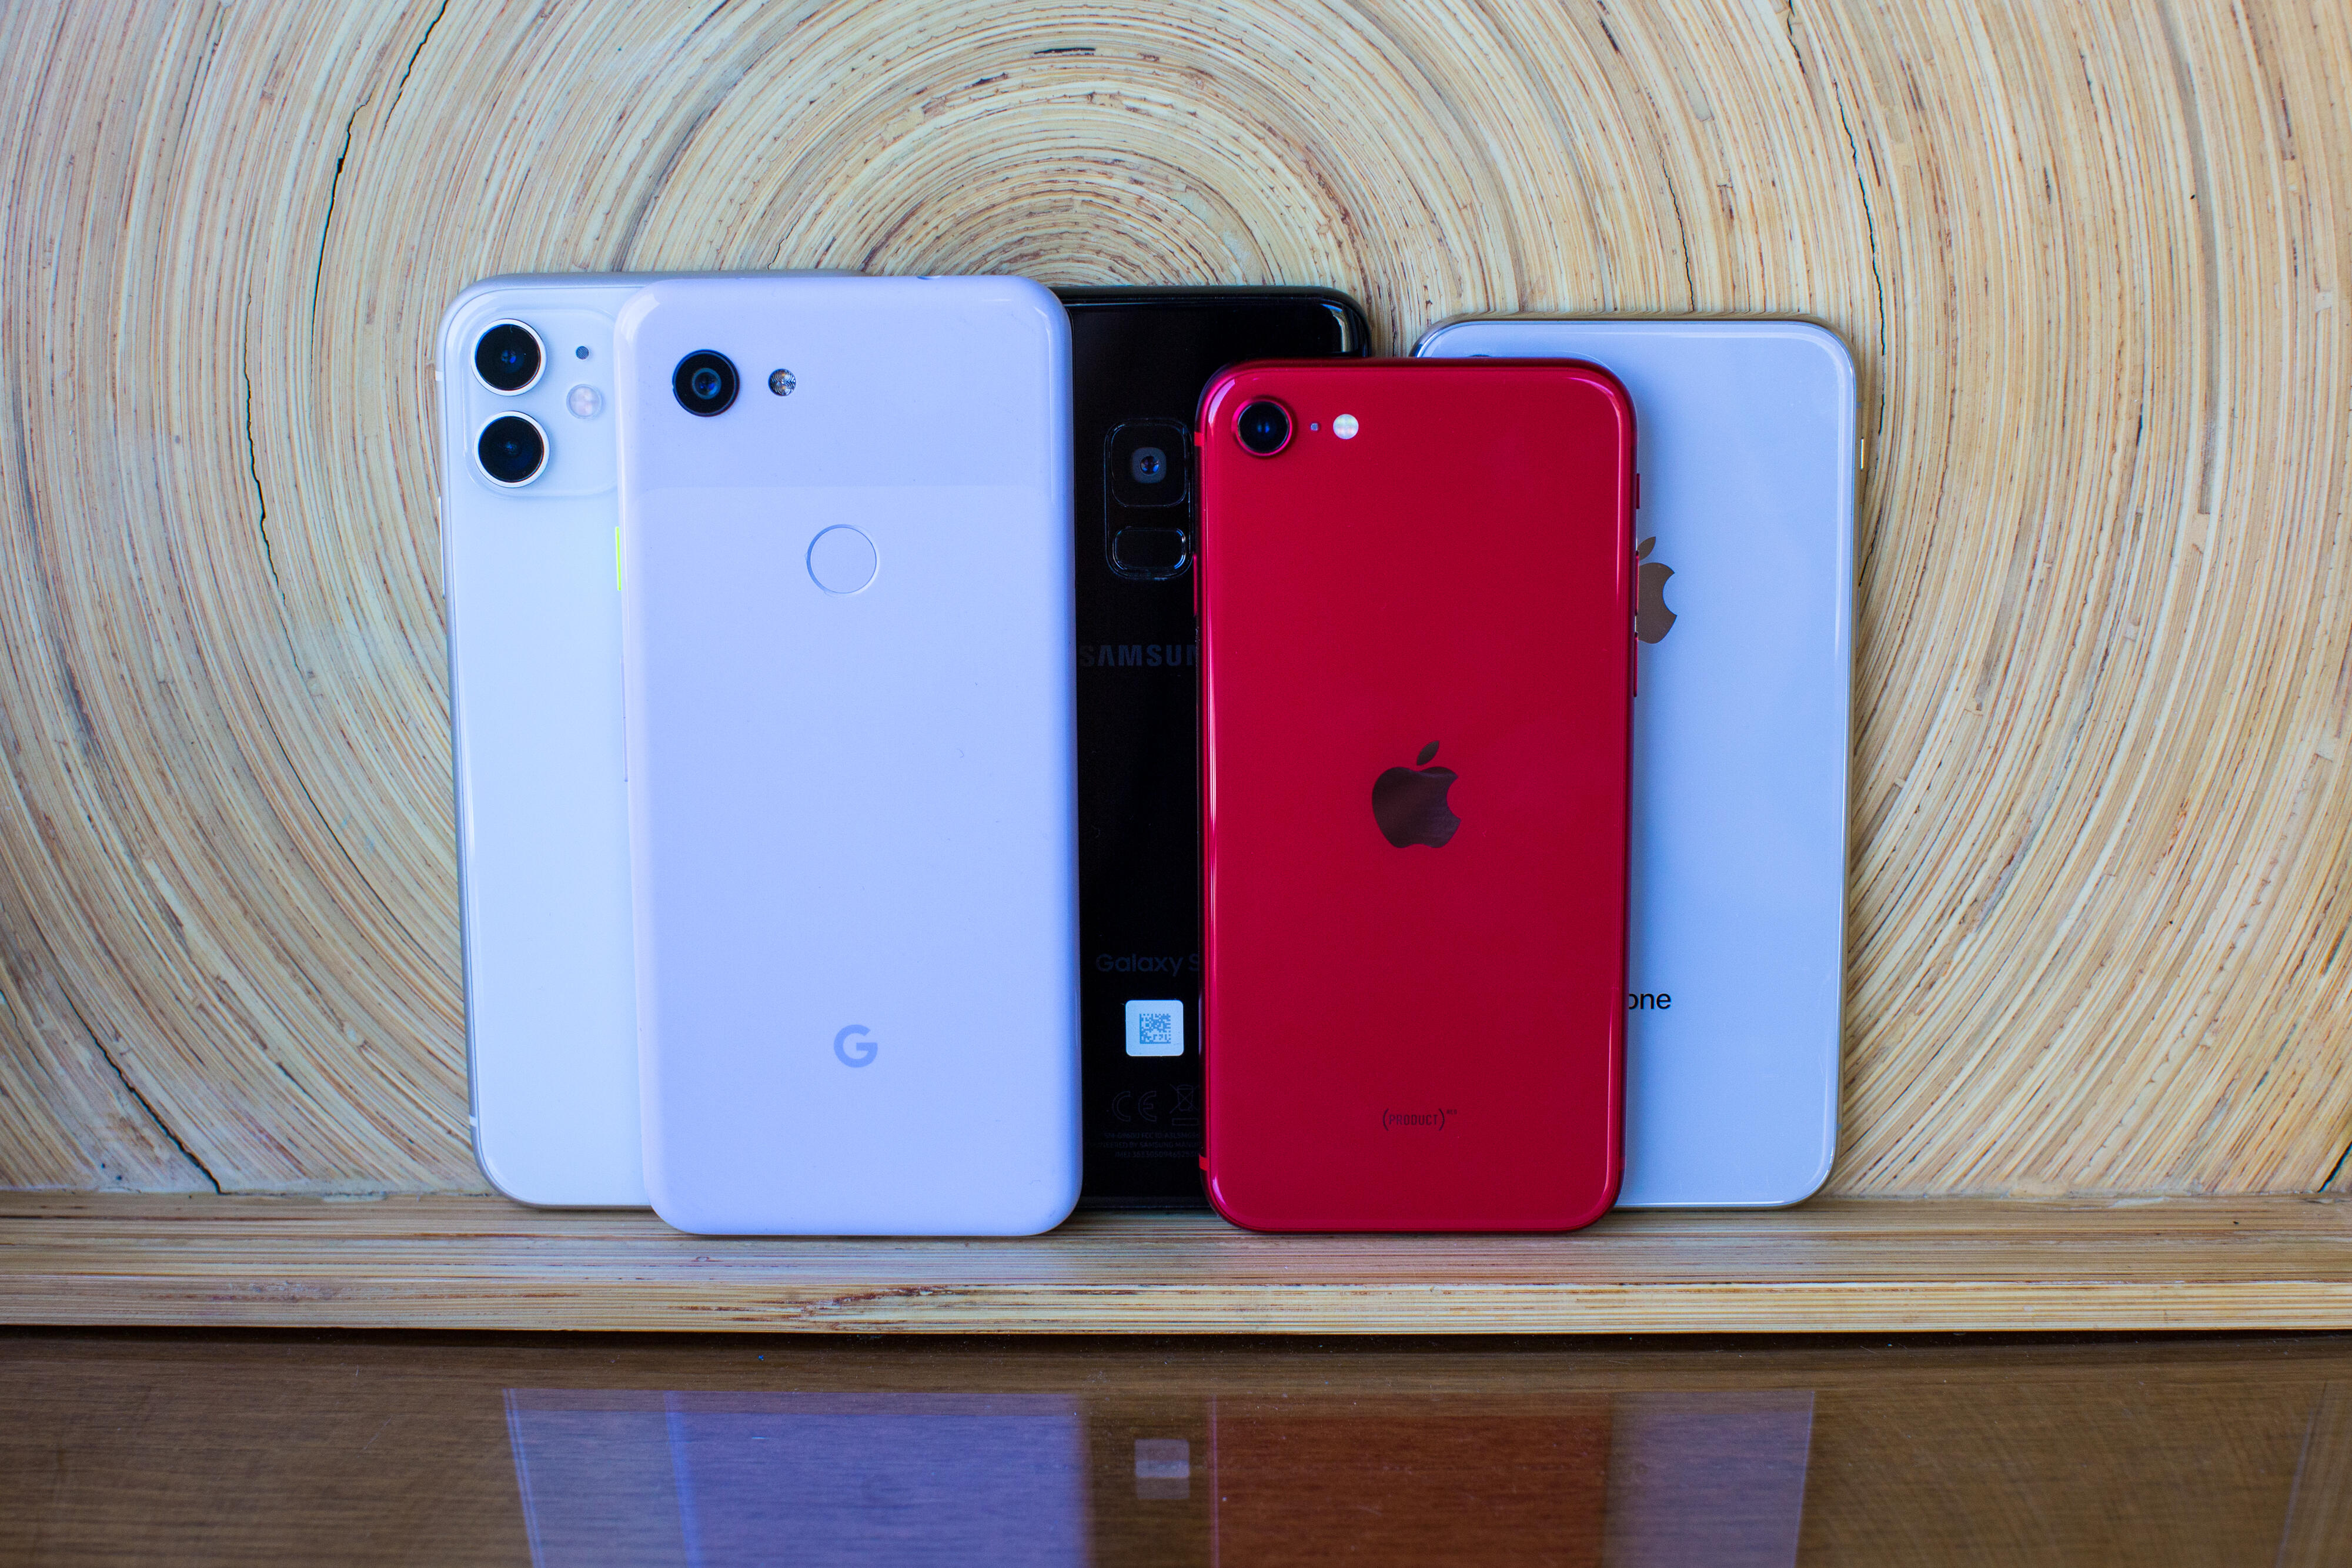 phone-stack-apple-iphone-android-google-pixel-1750